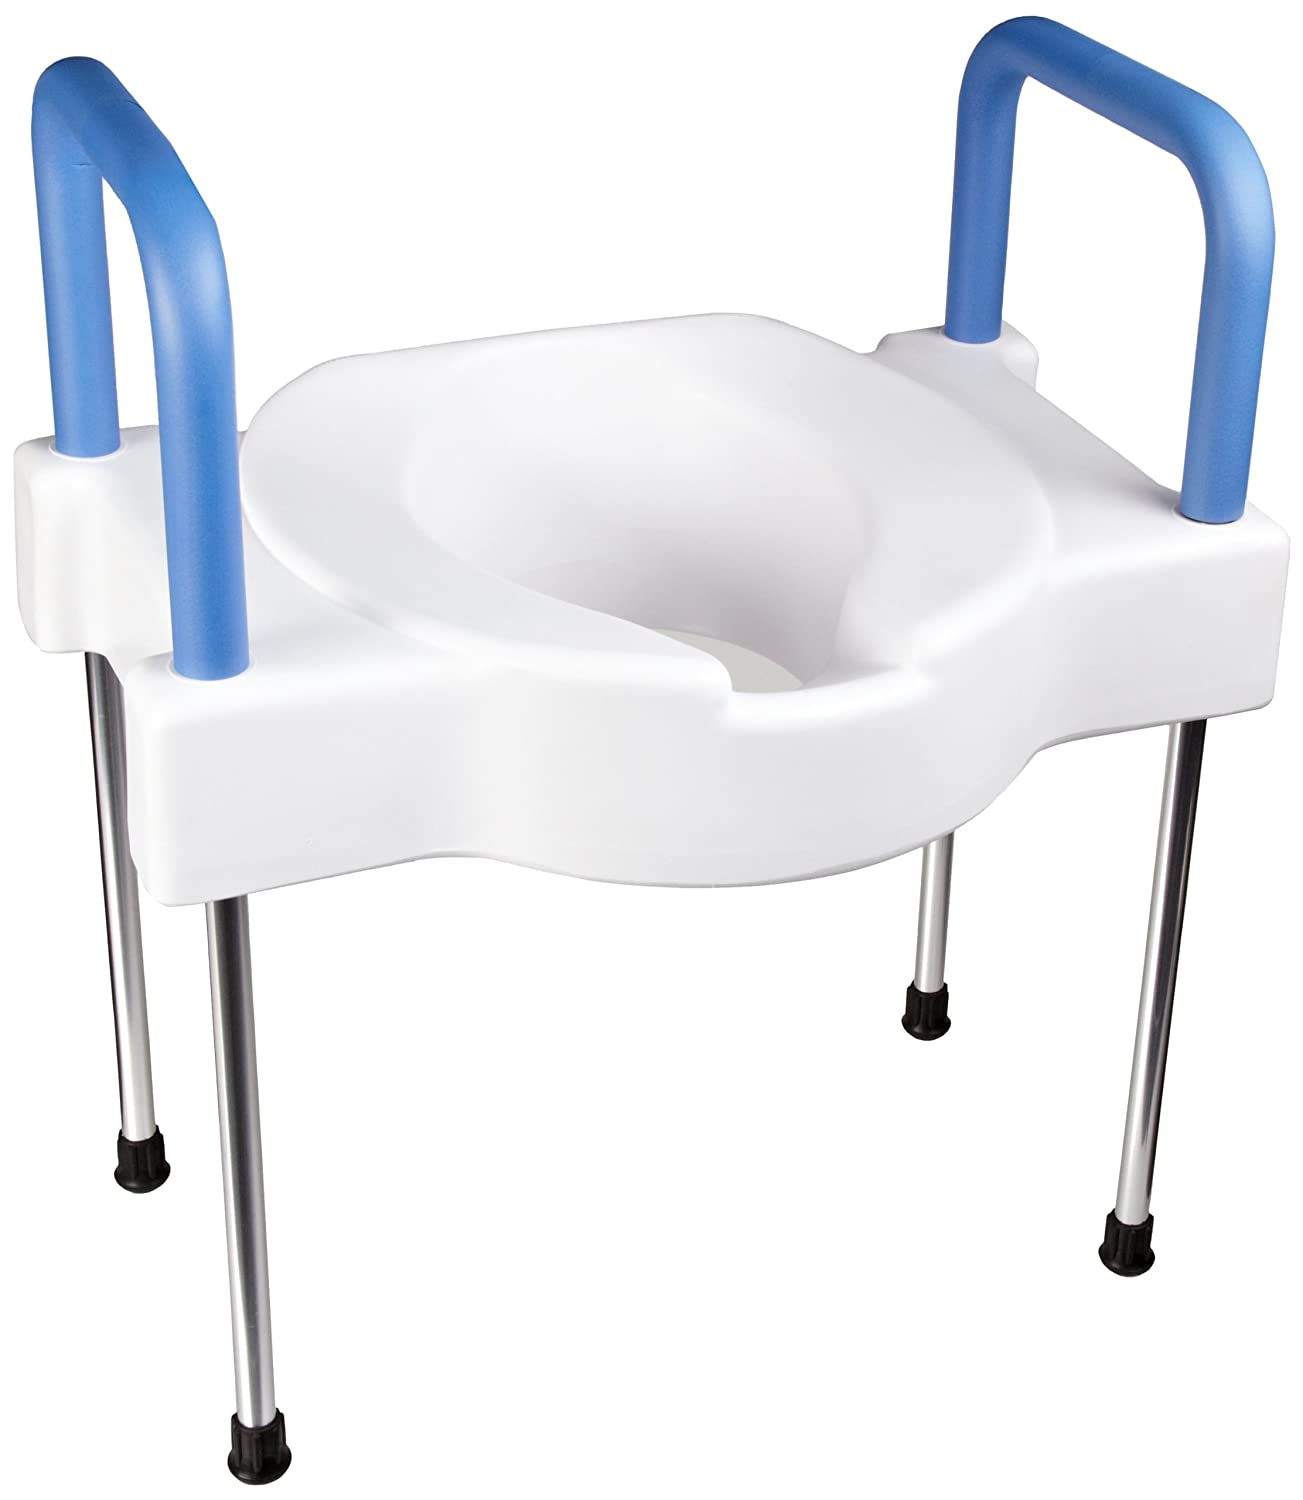 Tall Ette Extra Wide Elevated Toilet Seat With Legs New